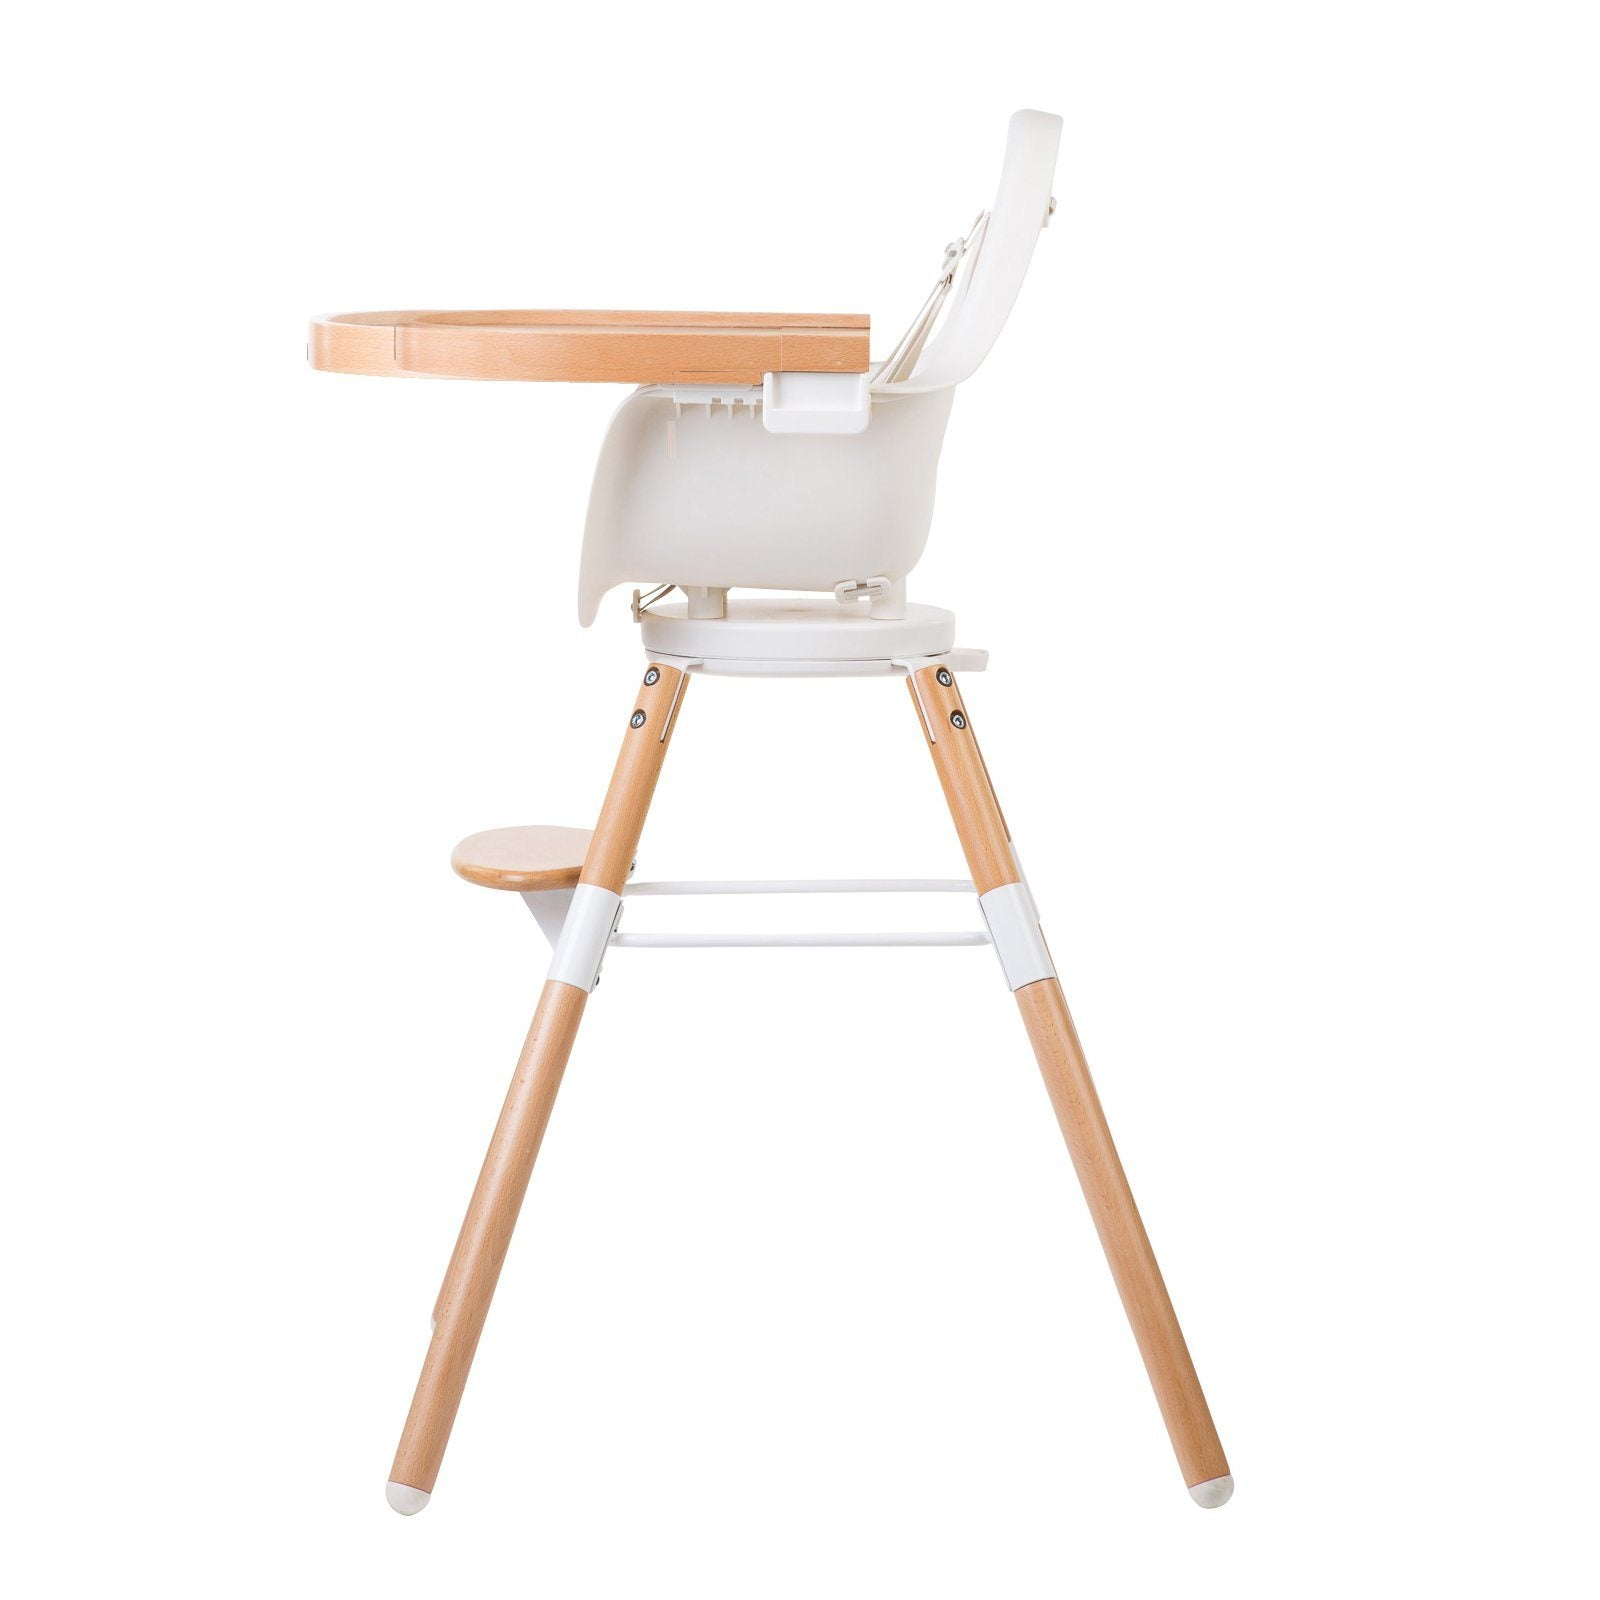 Evolu 2 Wooden Table Childhome